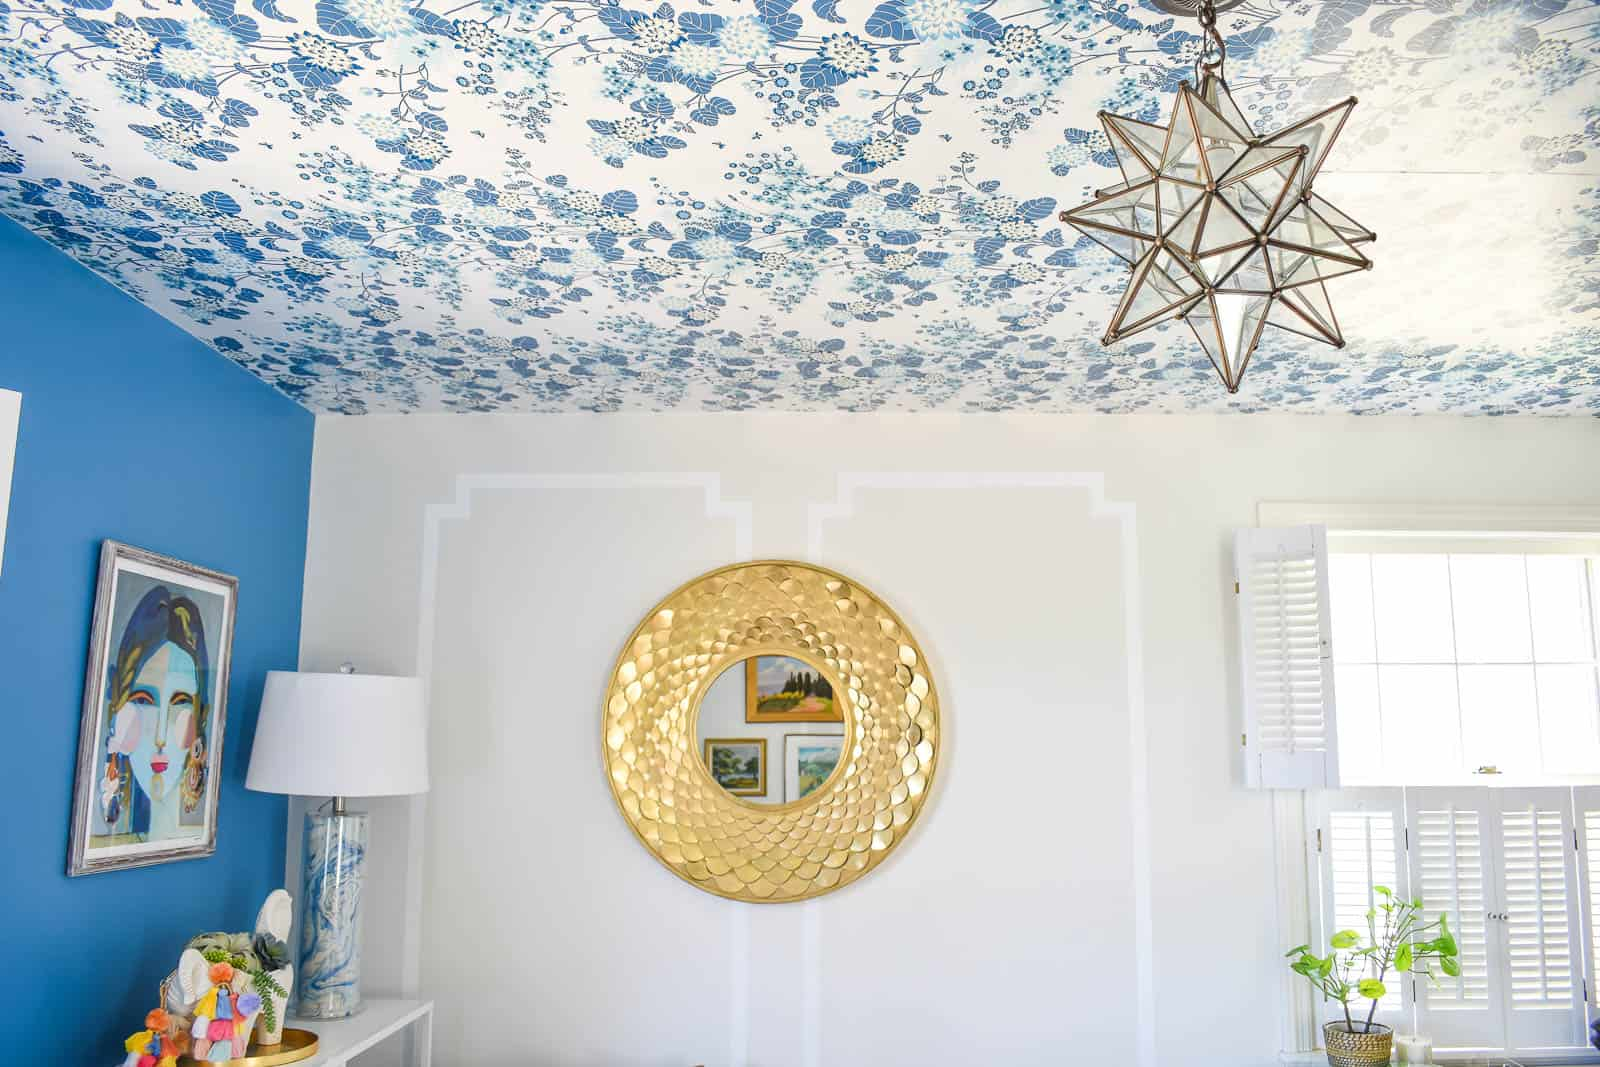 How To Make Your Own Rent Friendly Removable Wallpaper At Charlotte S House